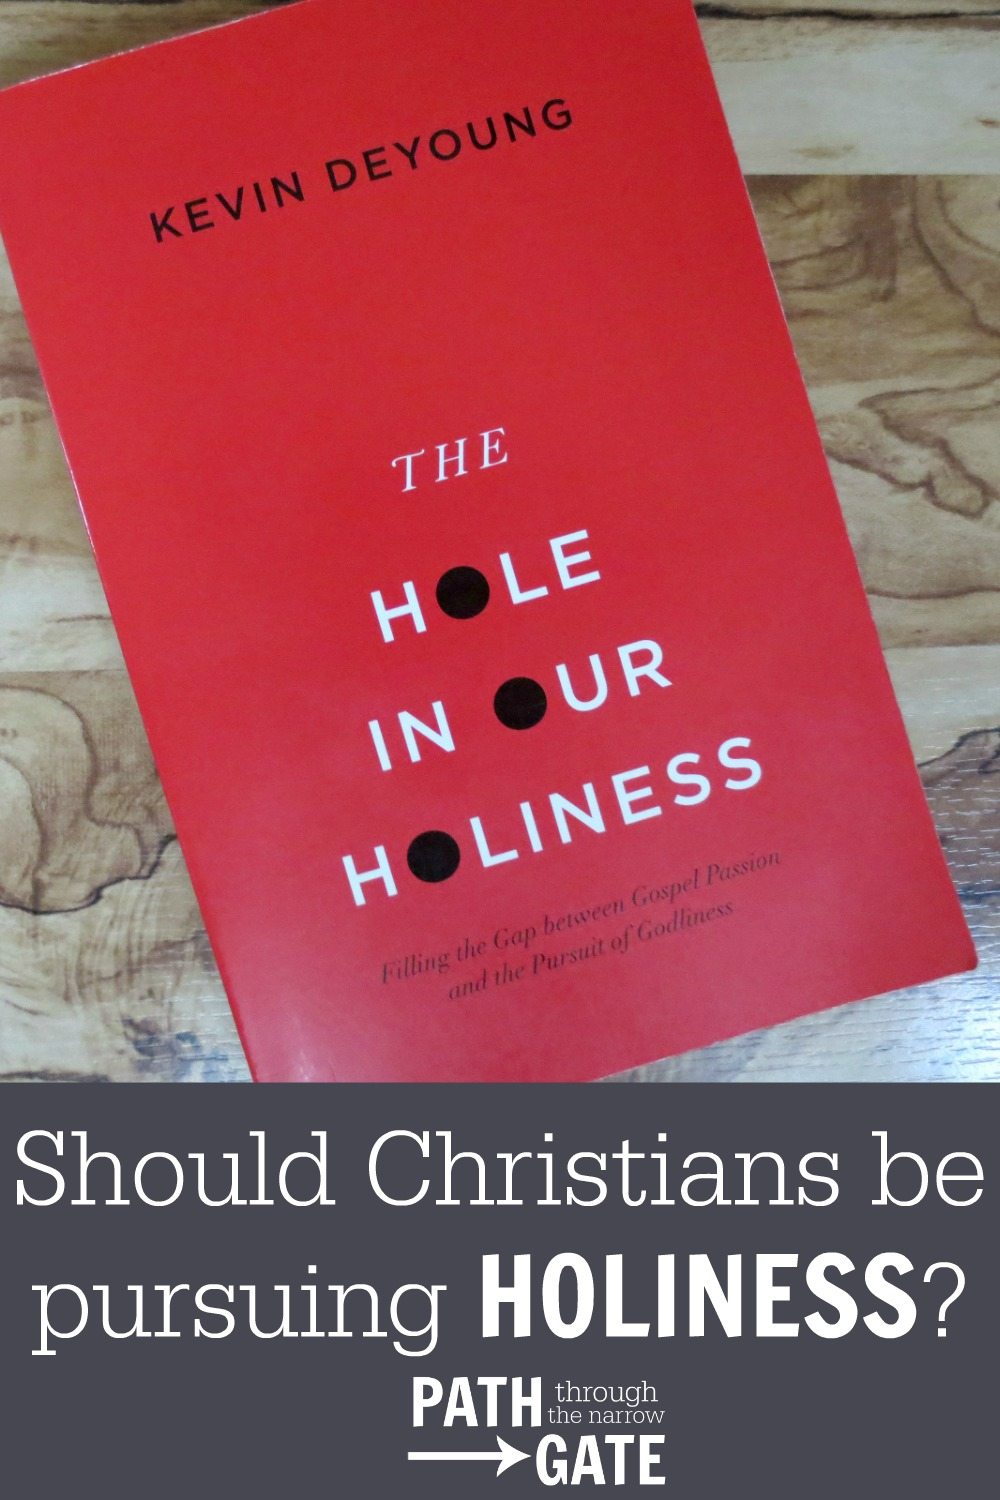 Are you taking your growth in holiness seriously? Is holiness a characteristic that Christians should even be pursuing?